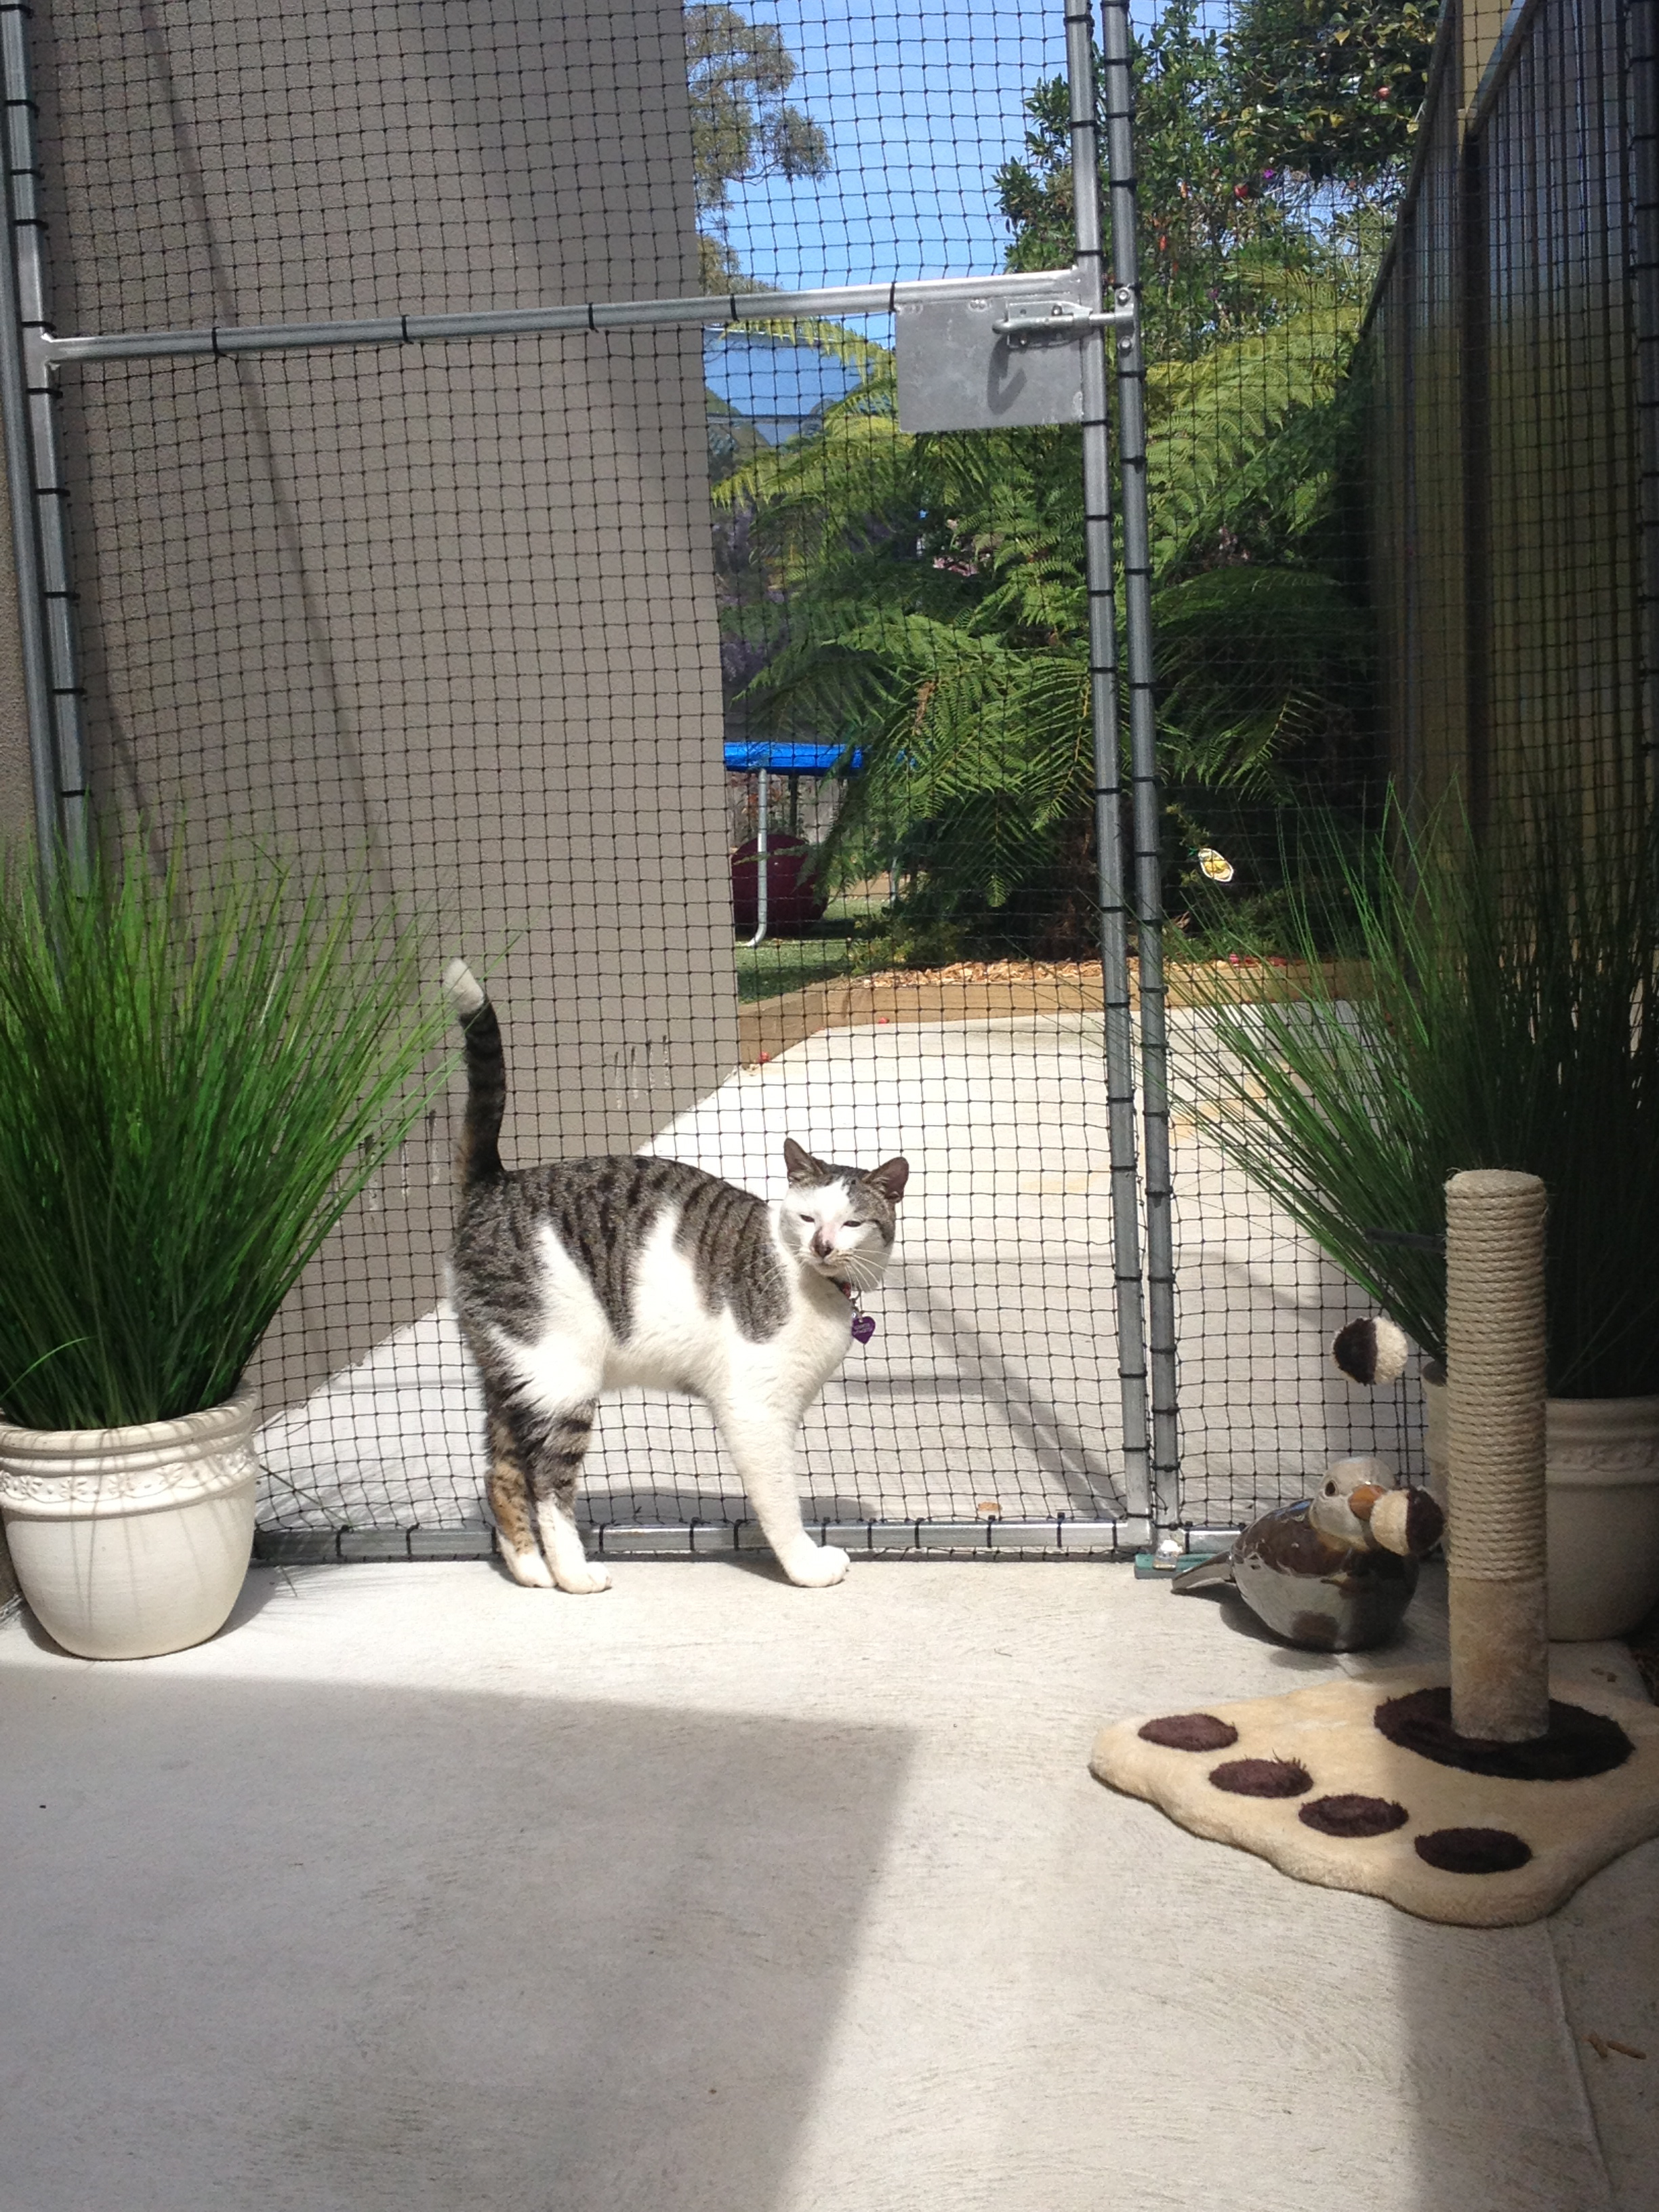 Caringbah Cat Hotel - Tourism Brisbane